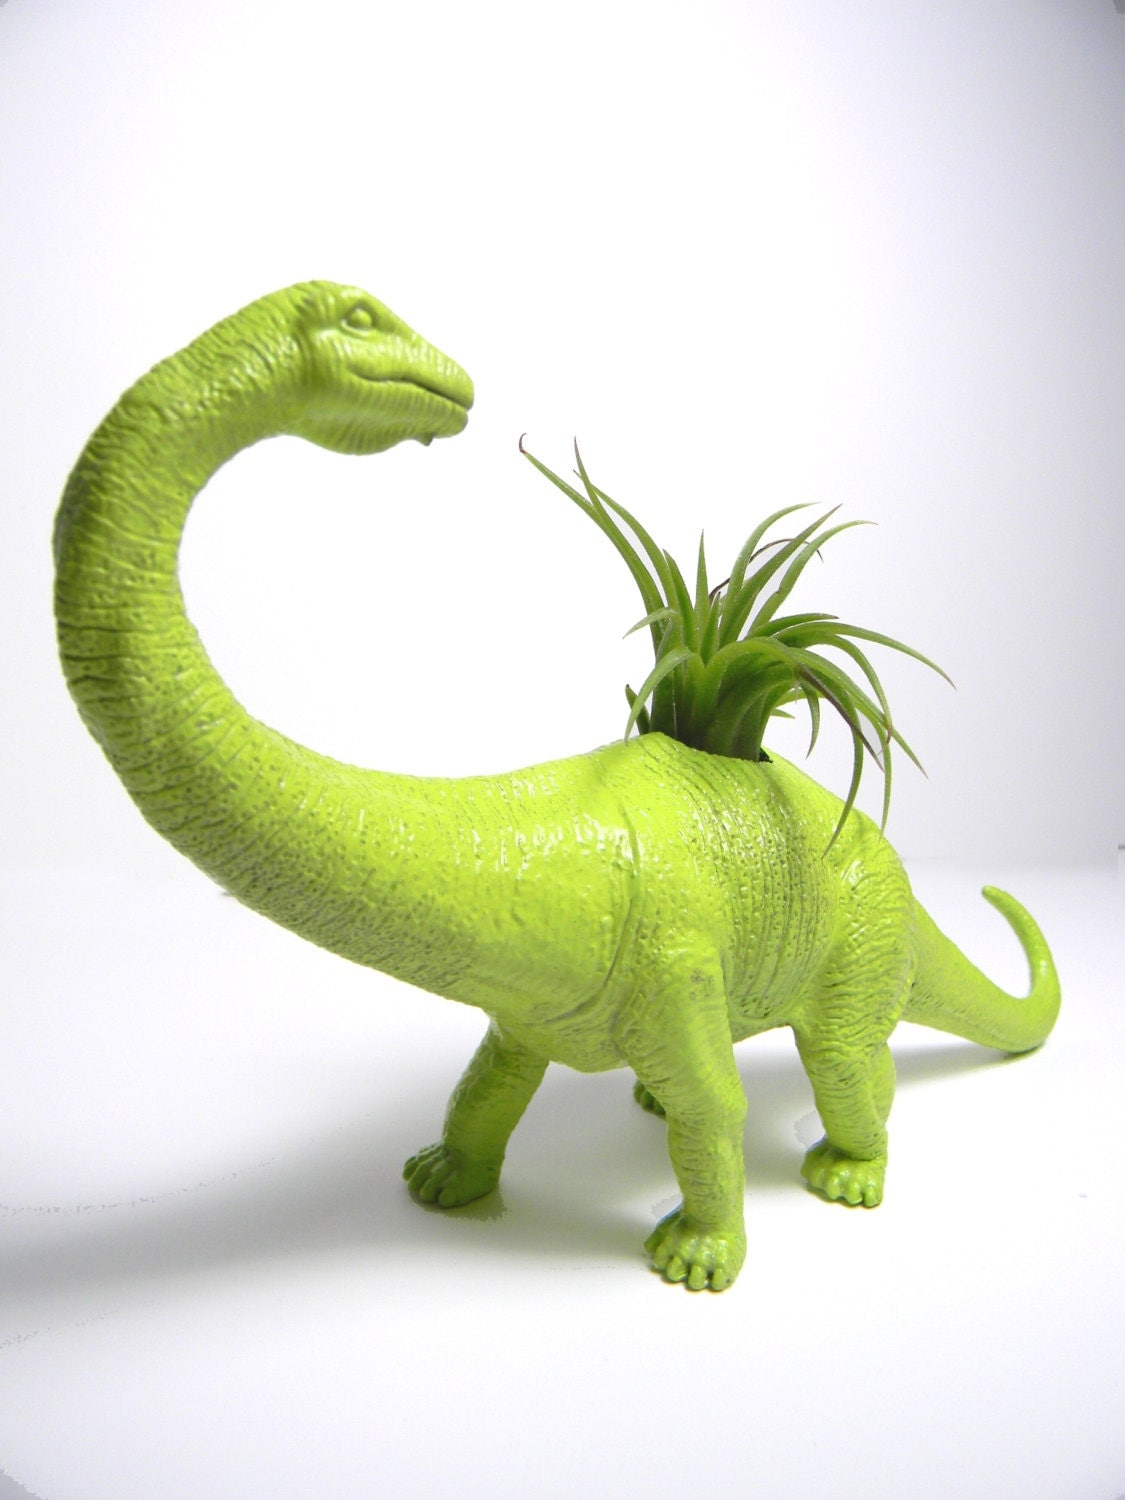 New Air Plant Dinosaur Planters With Air Plants Great For